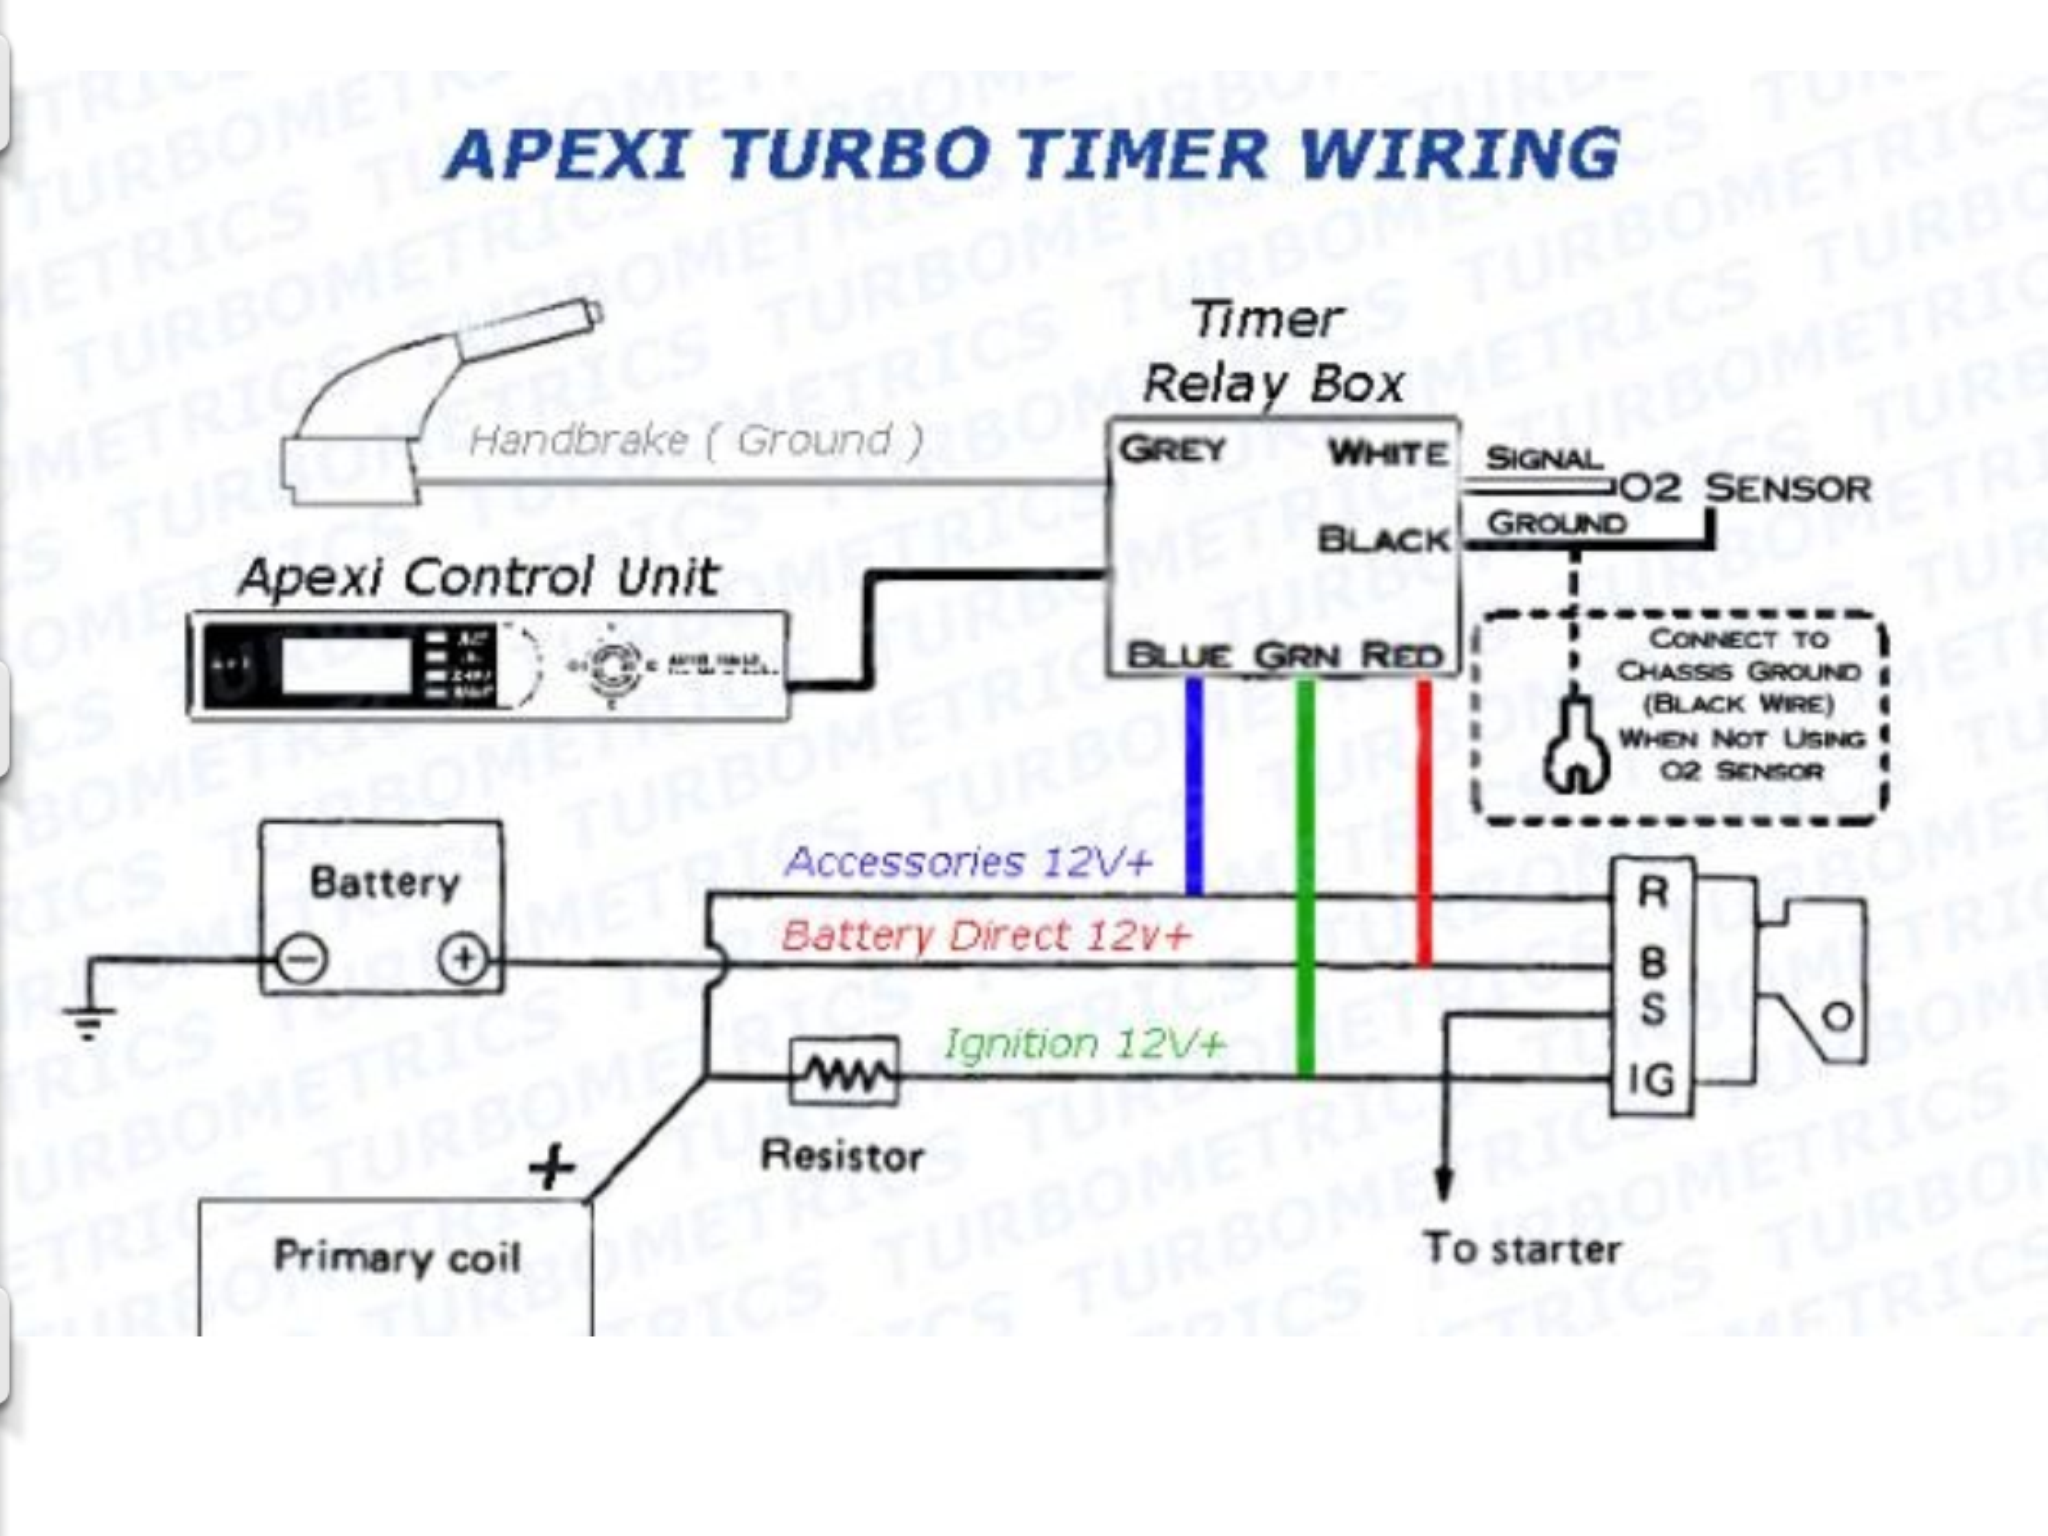 Modern Apexi Turbo Timer Wiring Diagram Collection - Best Images for ...